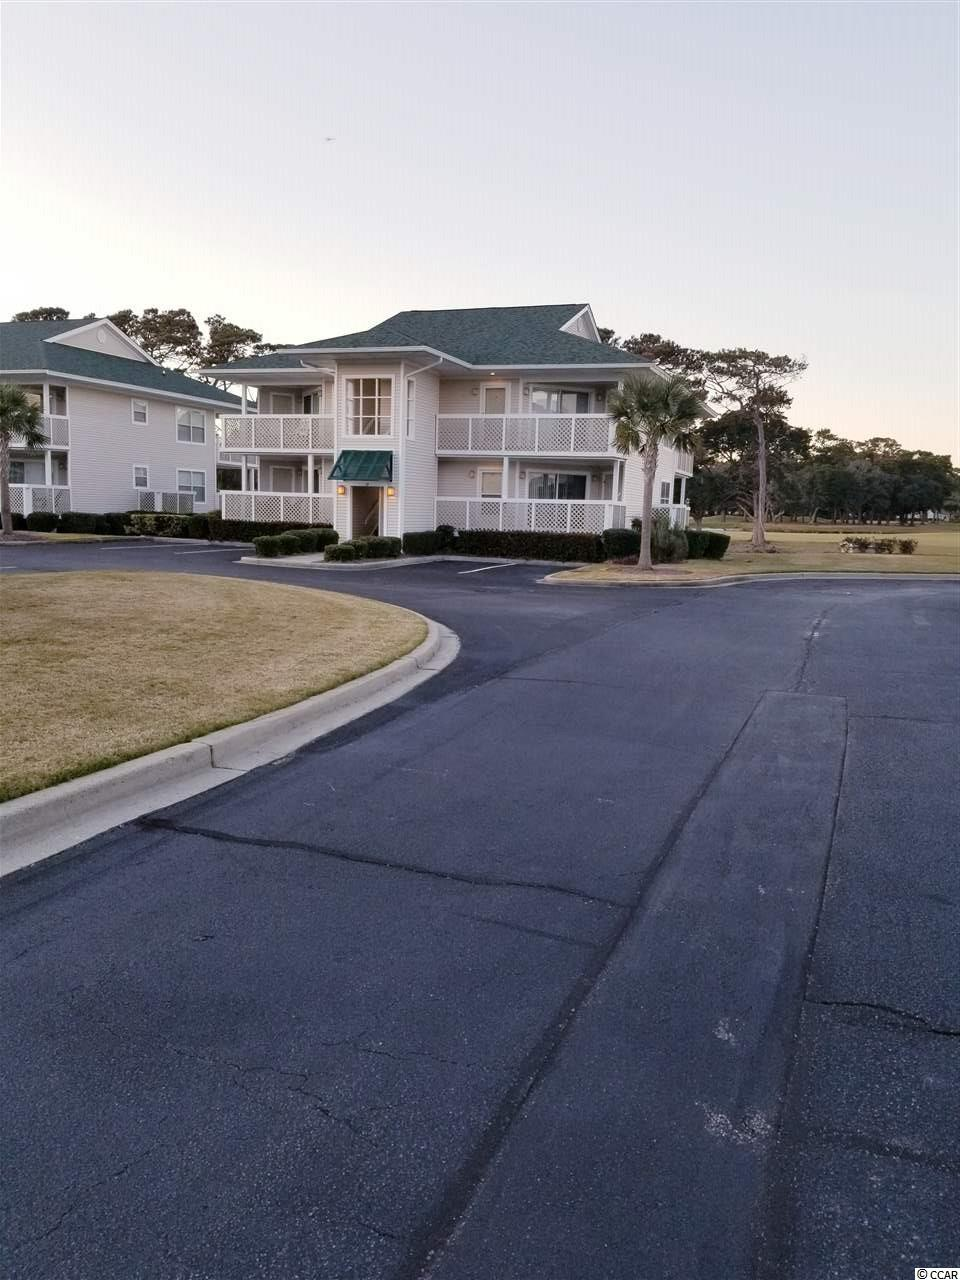 Spacious and open 2br/2ba with amazing views of lake and Surf Club golf course.  Located across the street from public beach access. Recently painted with newer refrigerator and dishwasher. Furniture less than 2yrs old. Well taken care of, never rented. This unit features all laminate and tile floors, front and back porches for relaxing, tiled walk-in double shower and large detached storage for beach gear. Community offers outdoor pool and hot tub. Call and schedule your appointment to see today before it's gone!